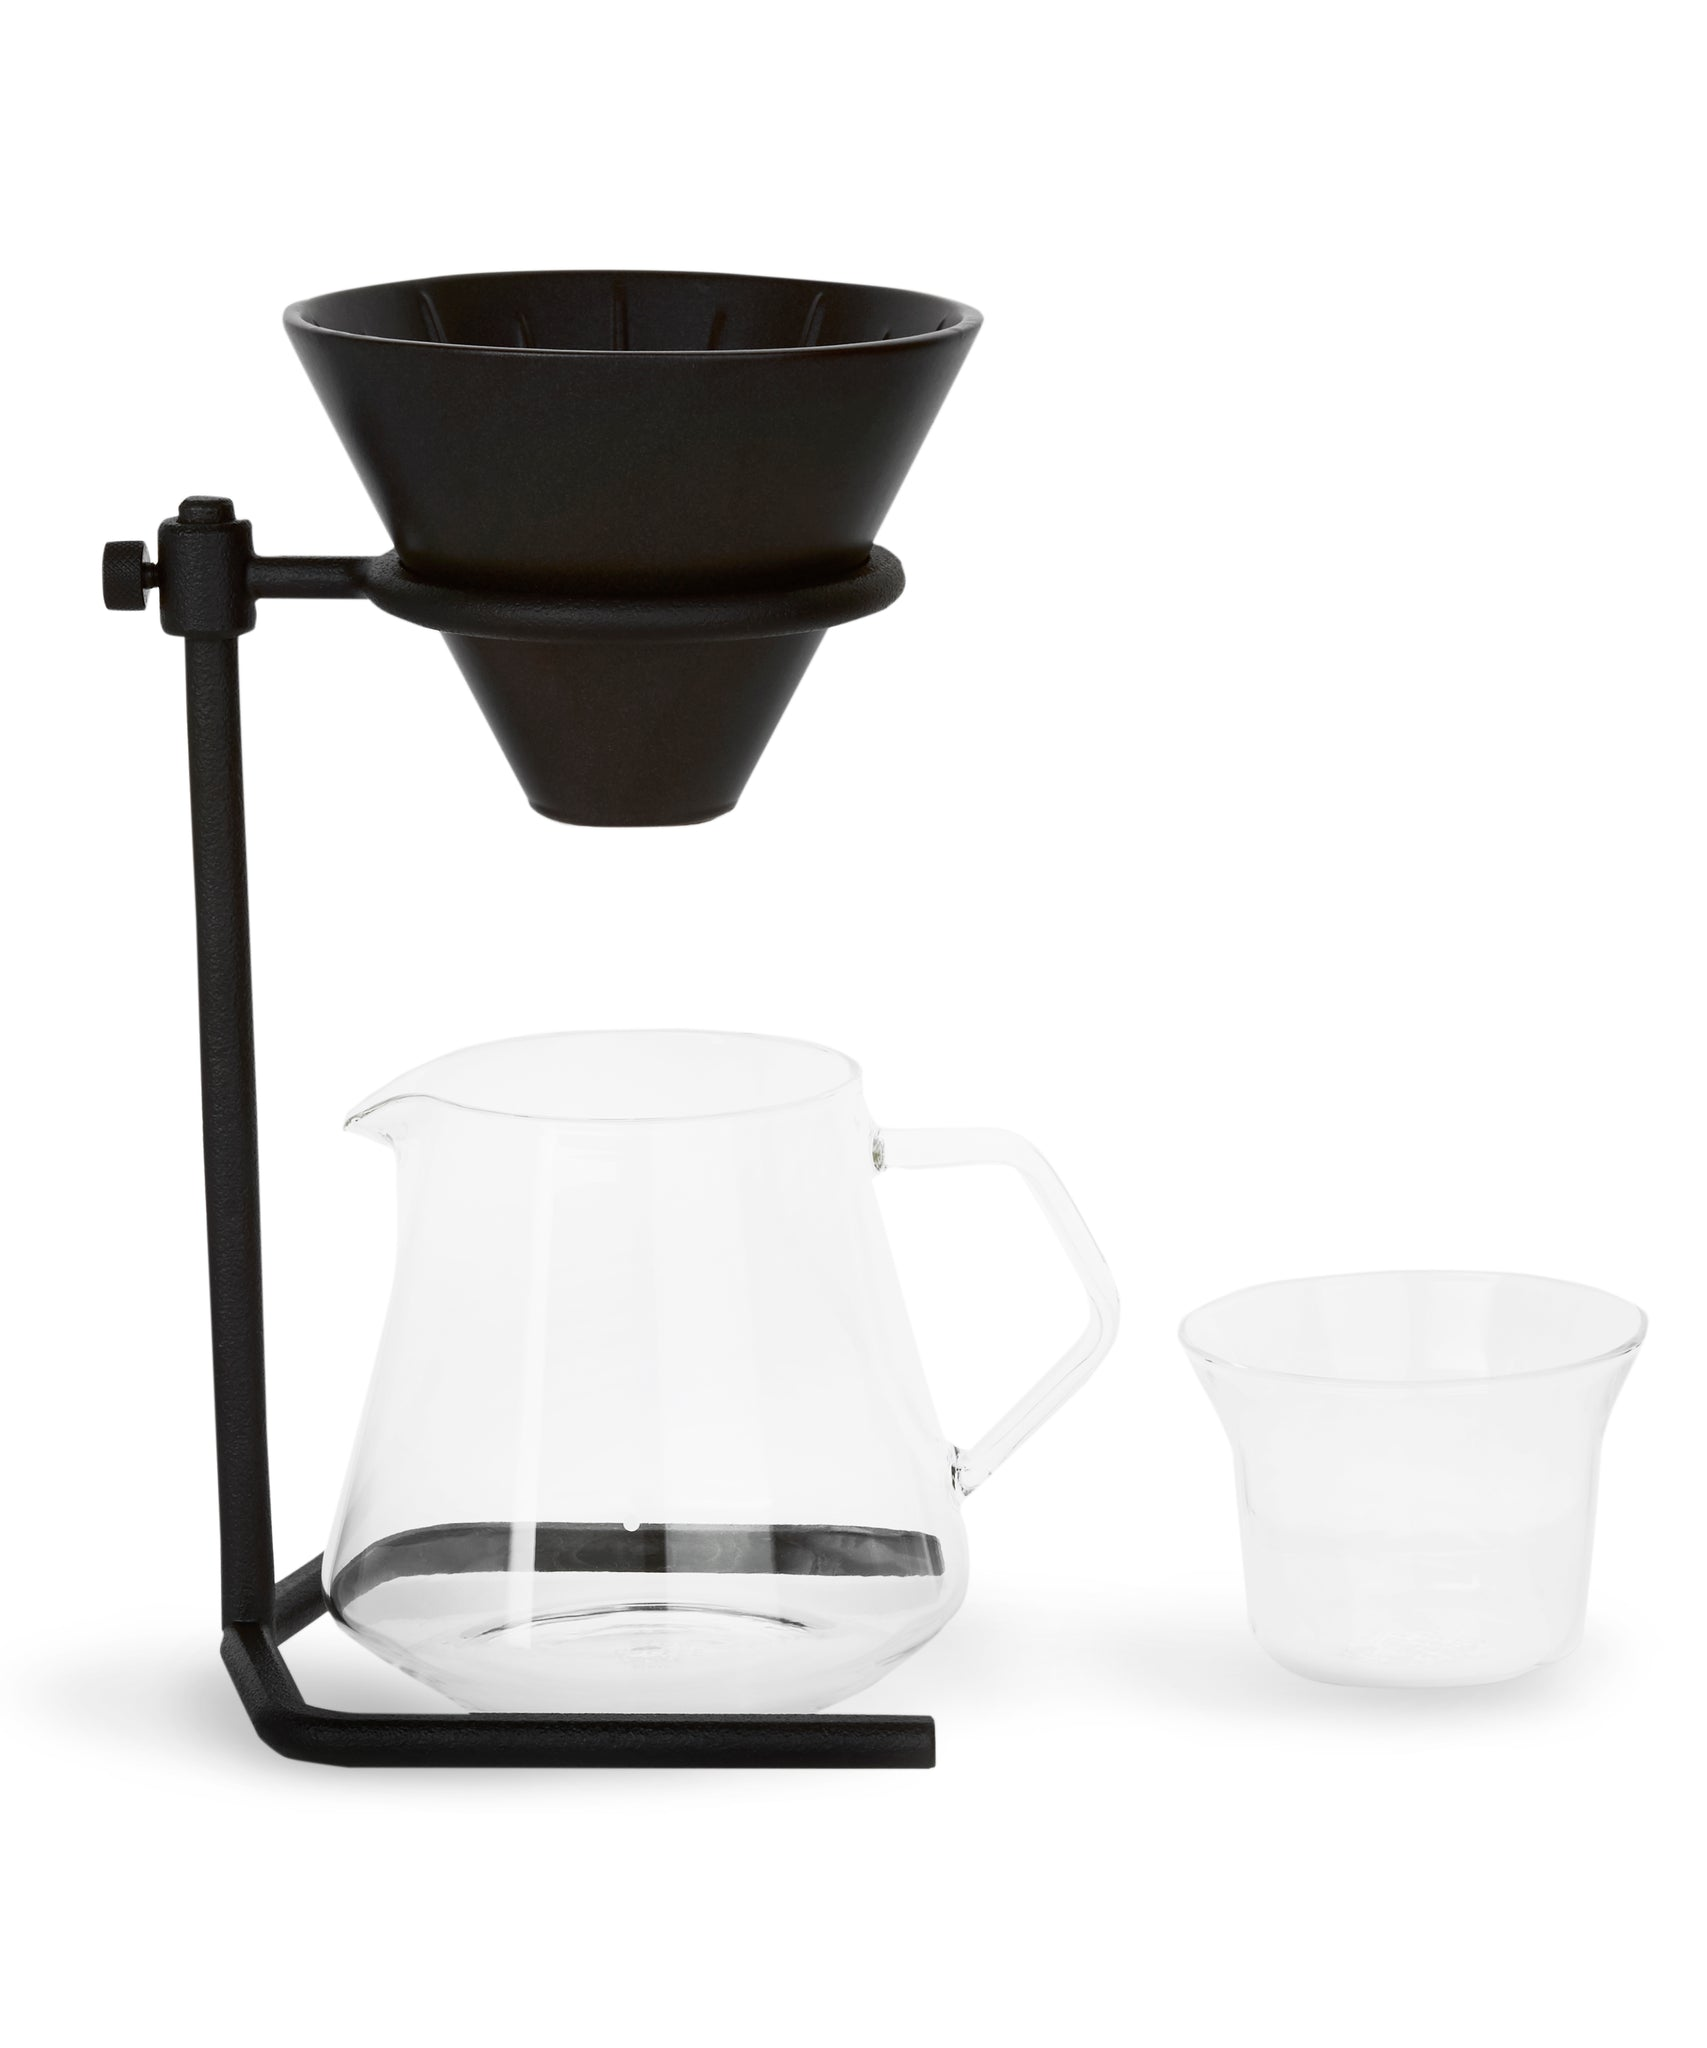 SCS-S04 Coffee Brewer Set 4 cup by Kinto